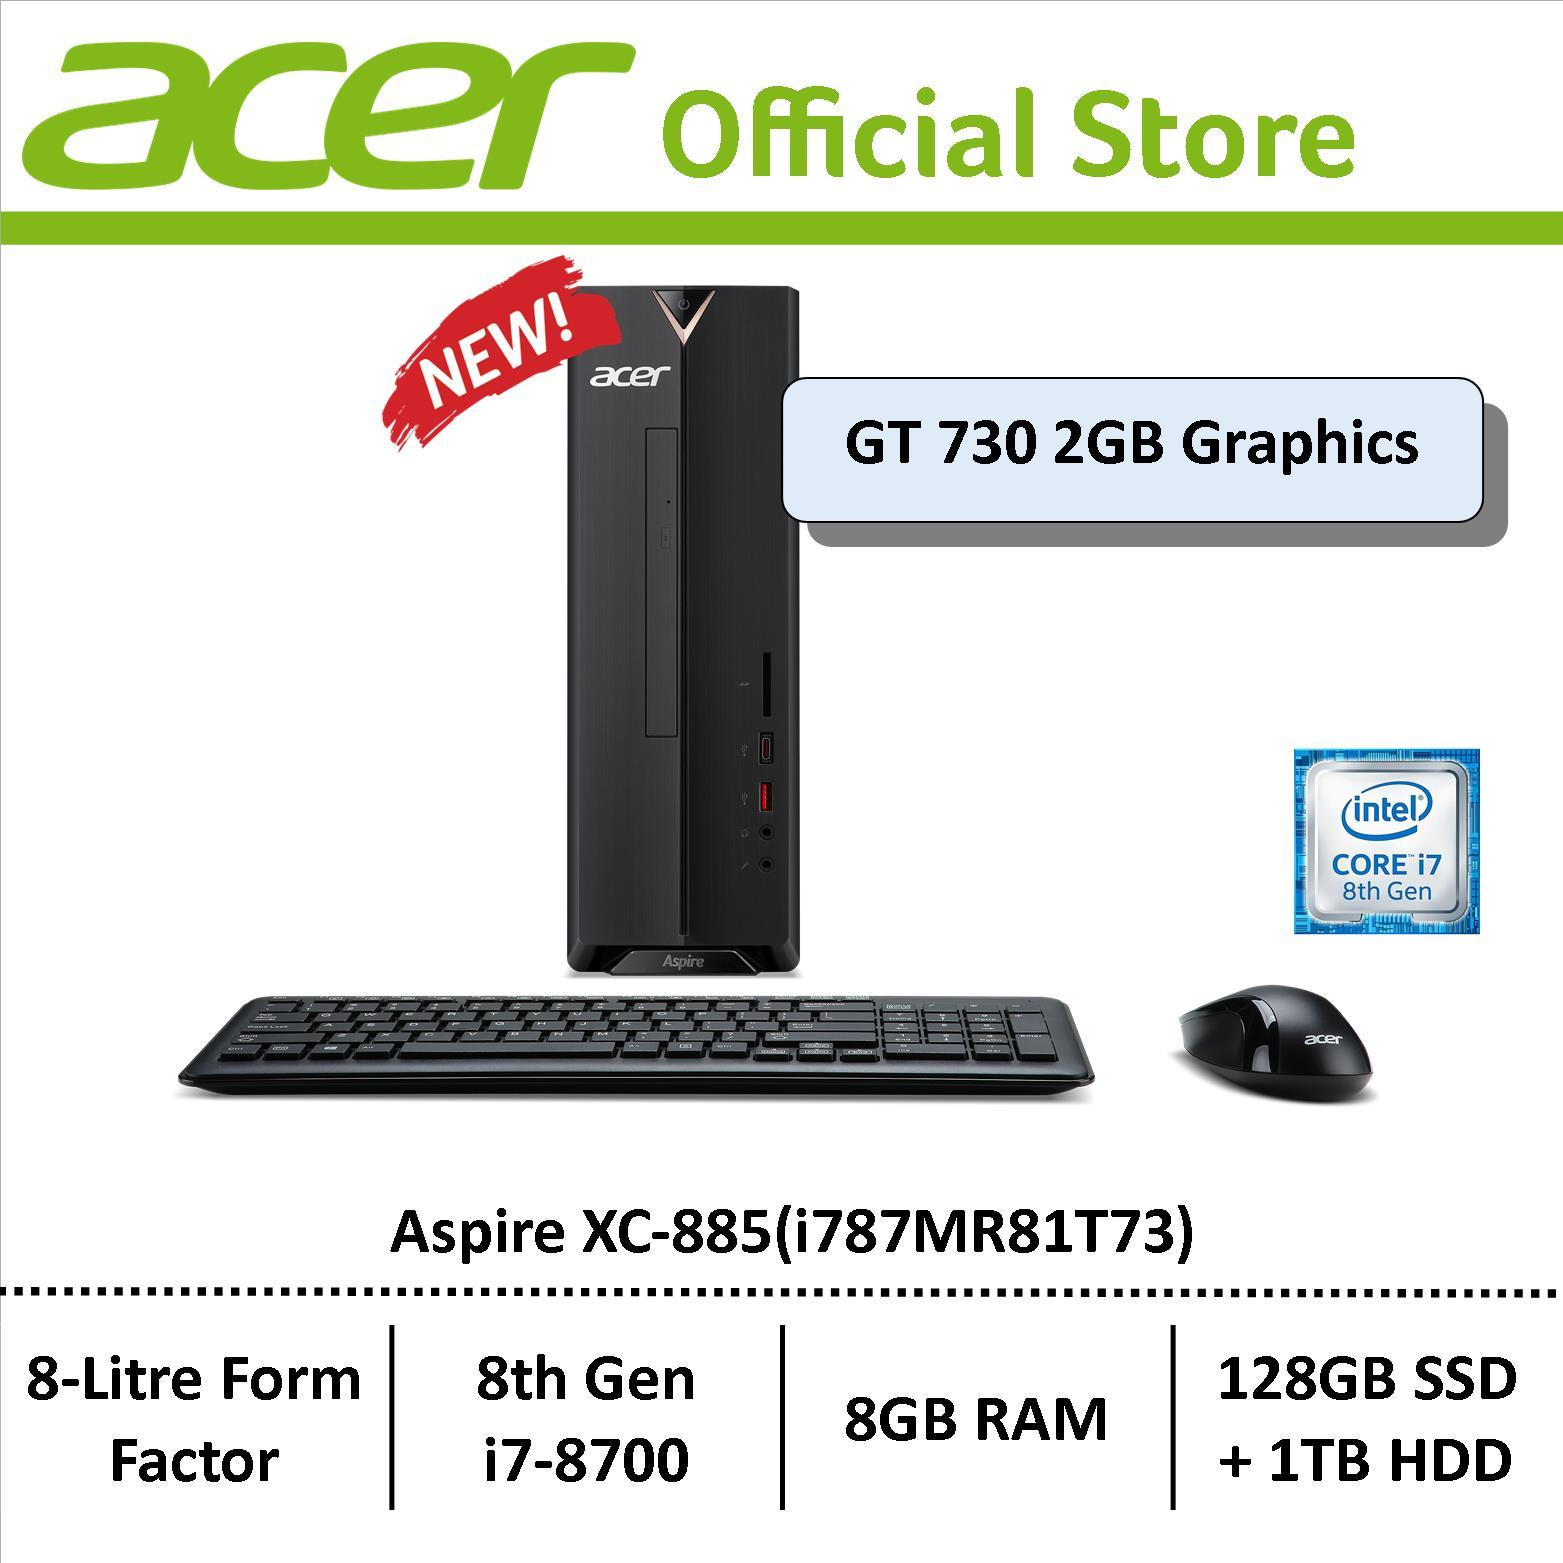 Acer Aspire Xc-885 (i787mr81t73) Mini-Desktop By Acer Official Store.